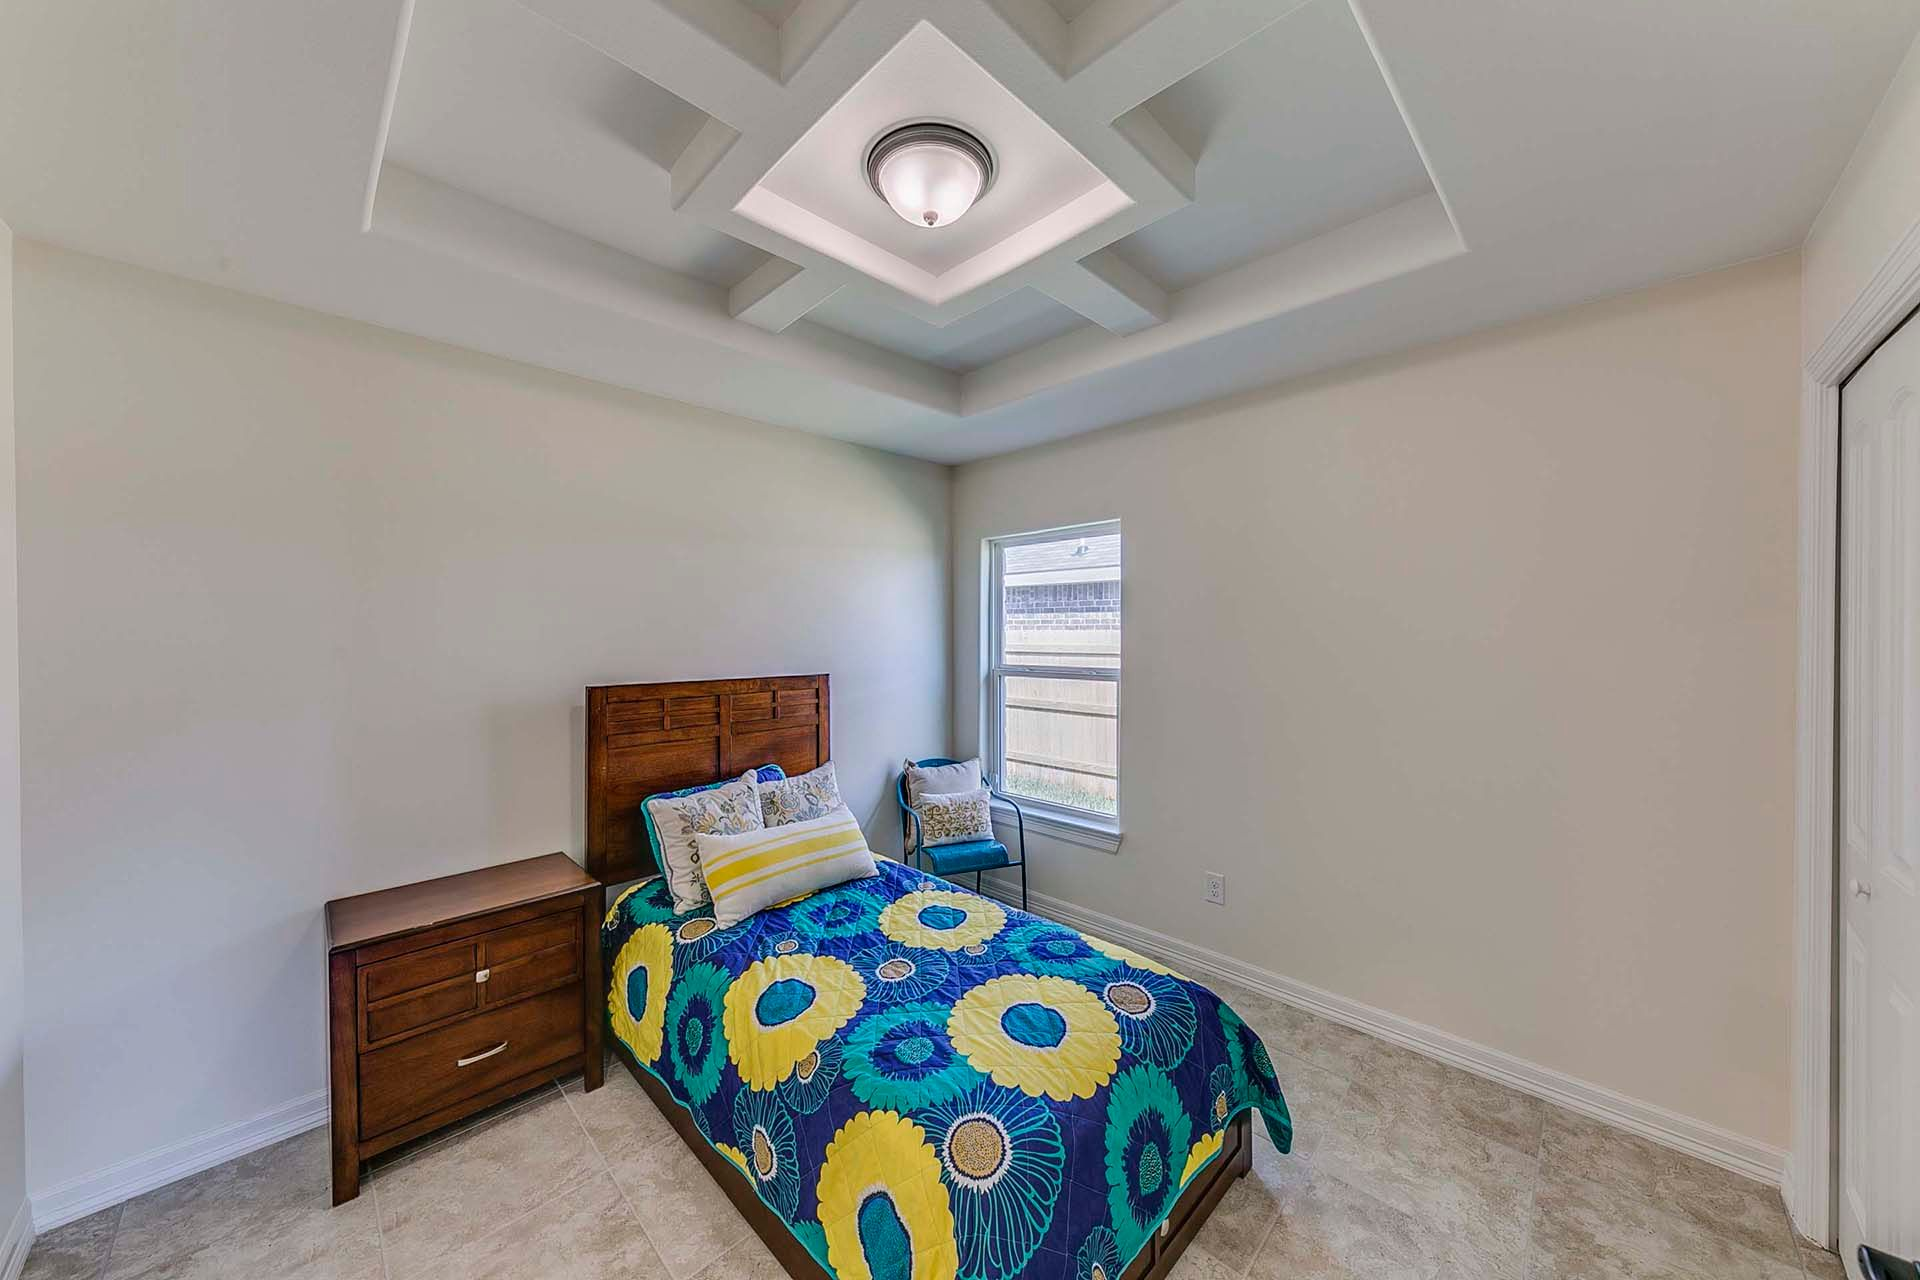 Bedroom featured in the Barceledo II By WestWind Homes in Rio Grande Valley, TX